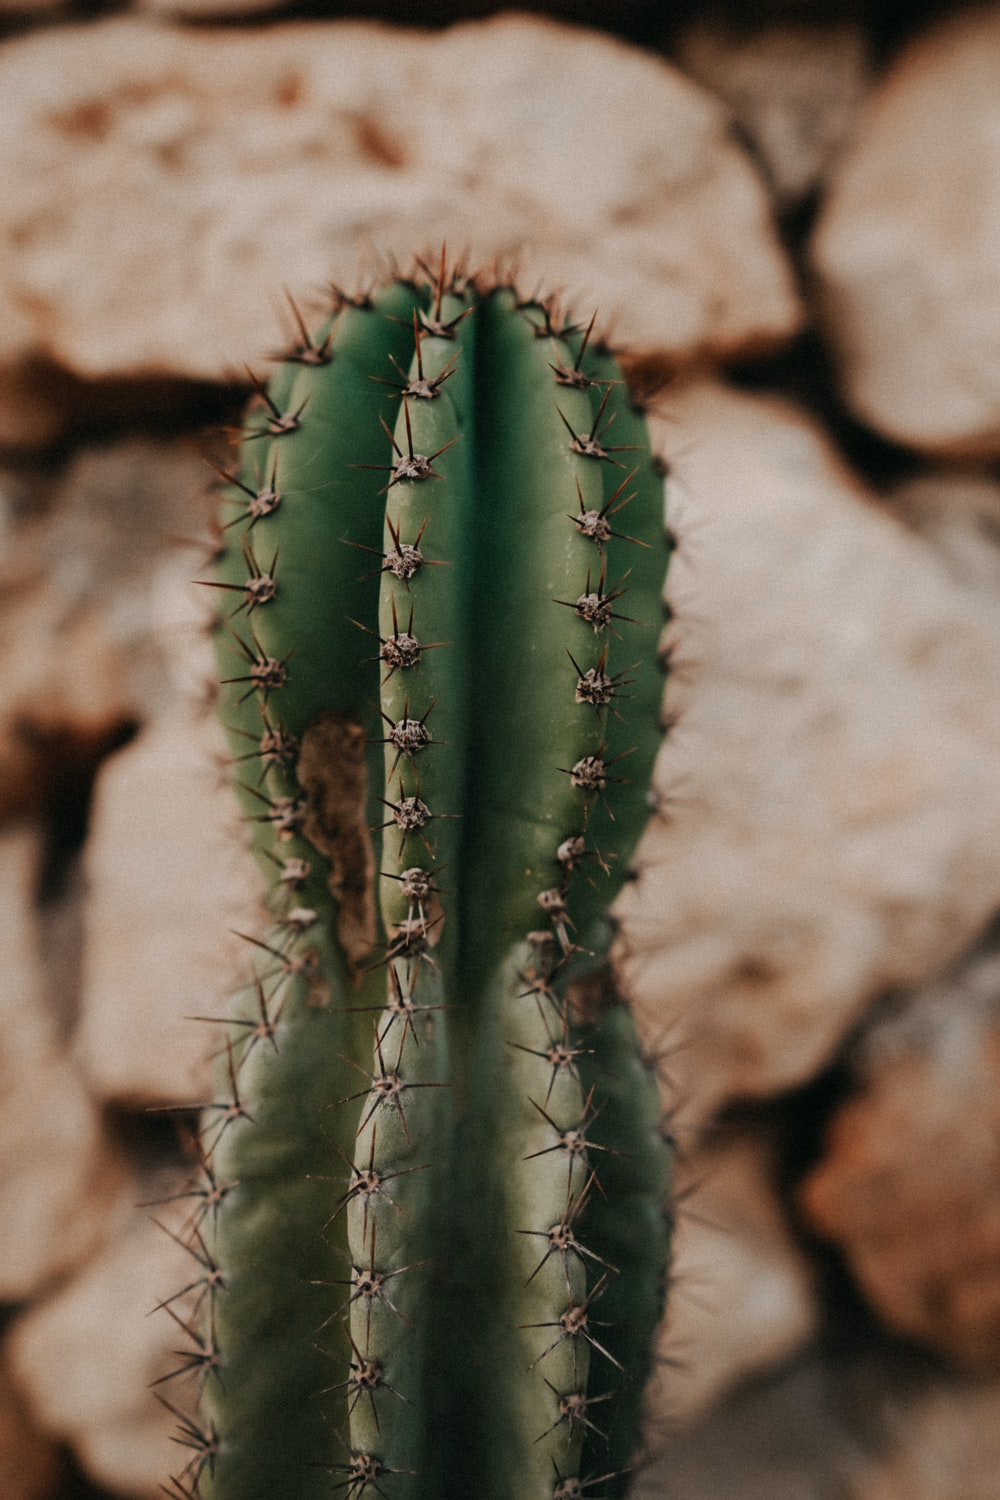 green cactus plant on brown rock